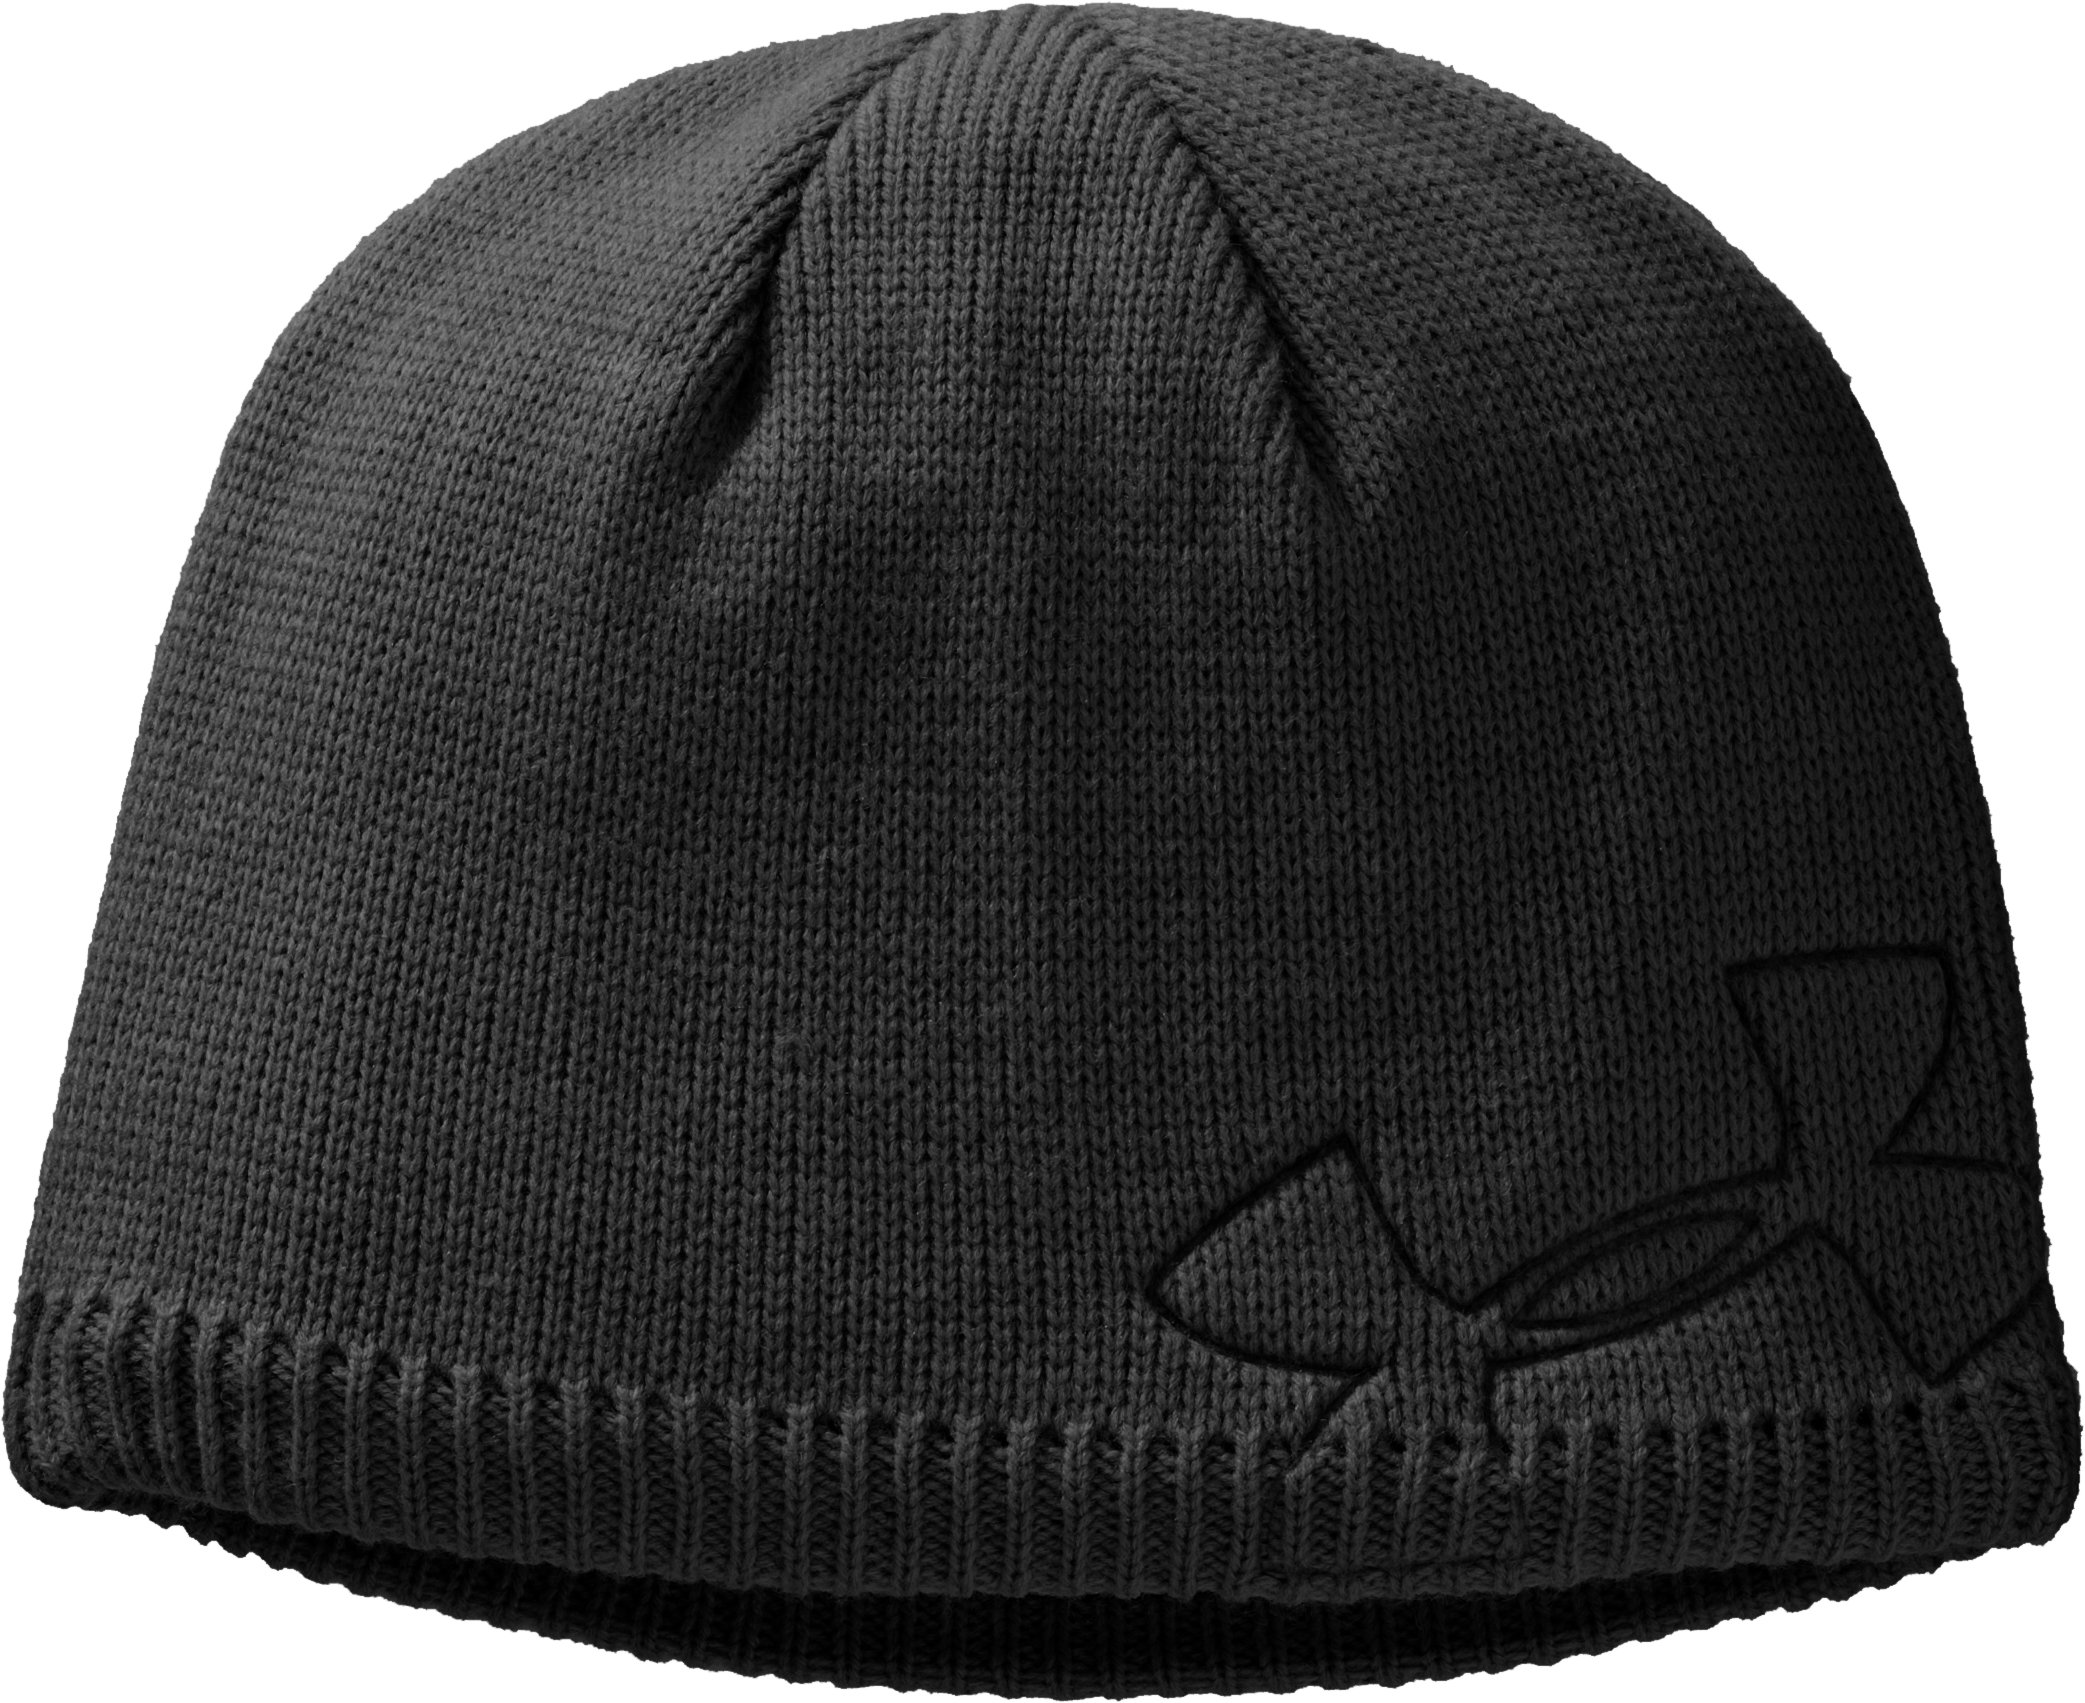 Men's Sonic Weld Beanie, Black , zoomed image